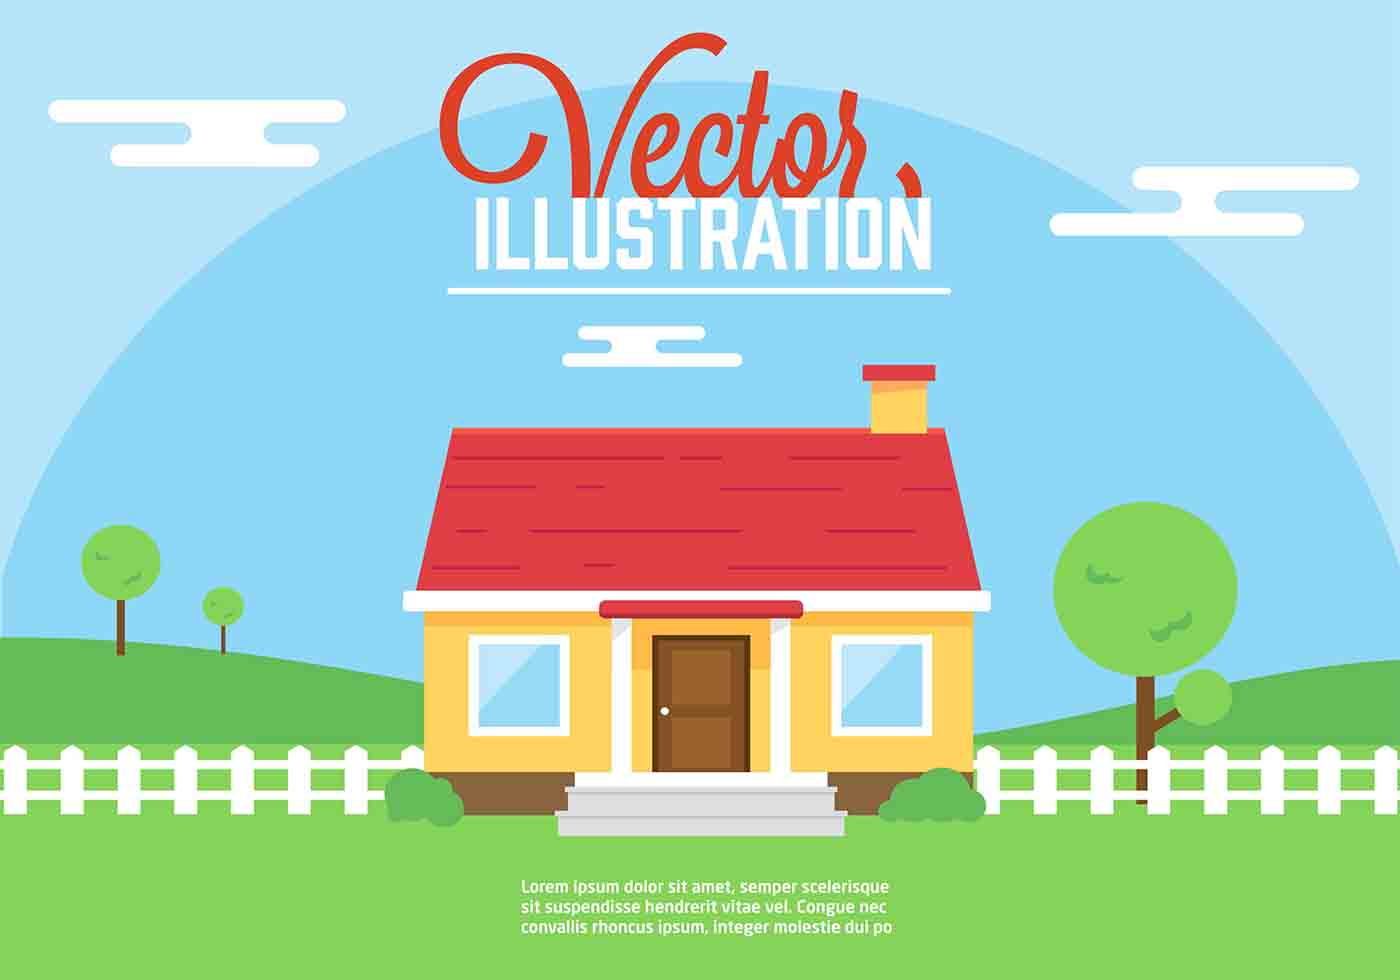 Vector House Illustration - Download Free Vector Art, Stock Graphics ...